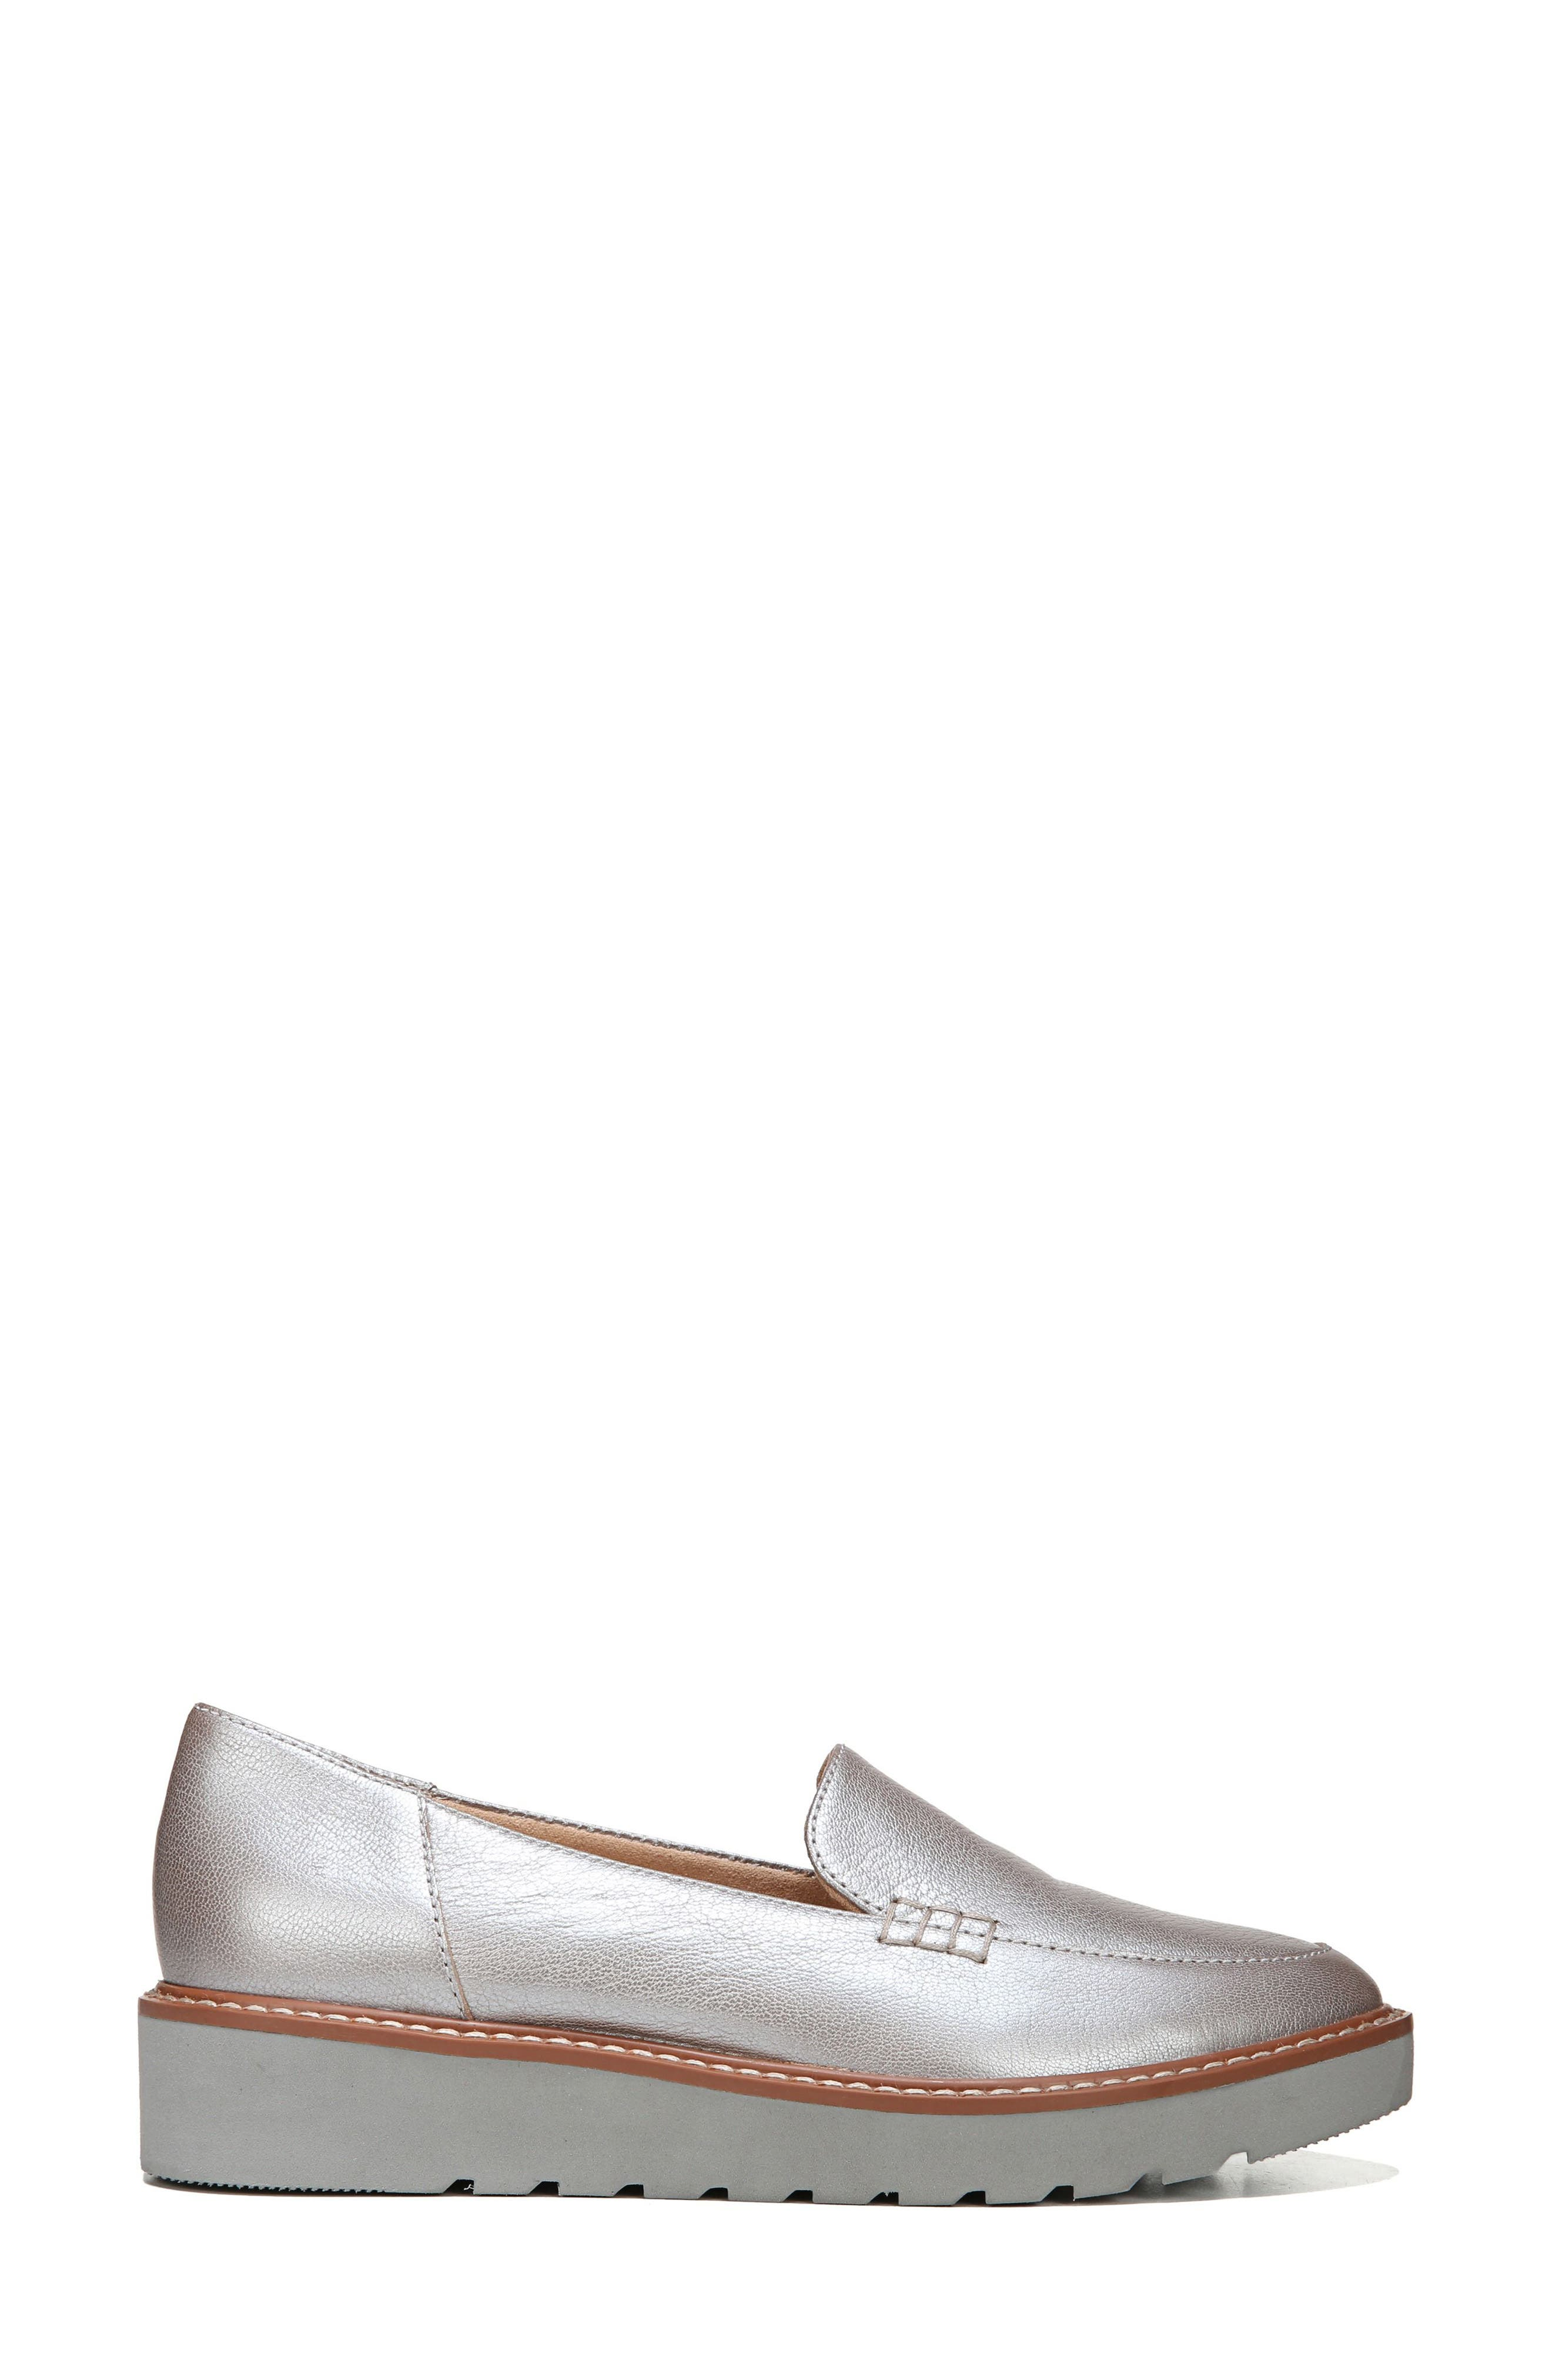 Andie Loafer,                             Alternate thumbnail 3, color,                             Silver Leather